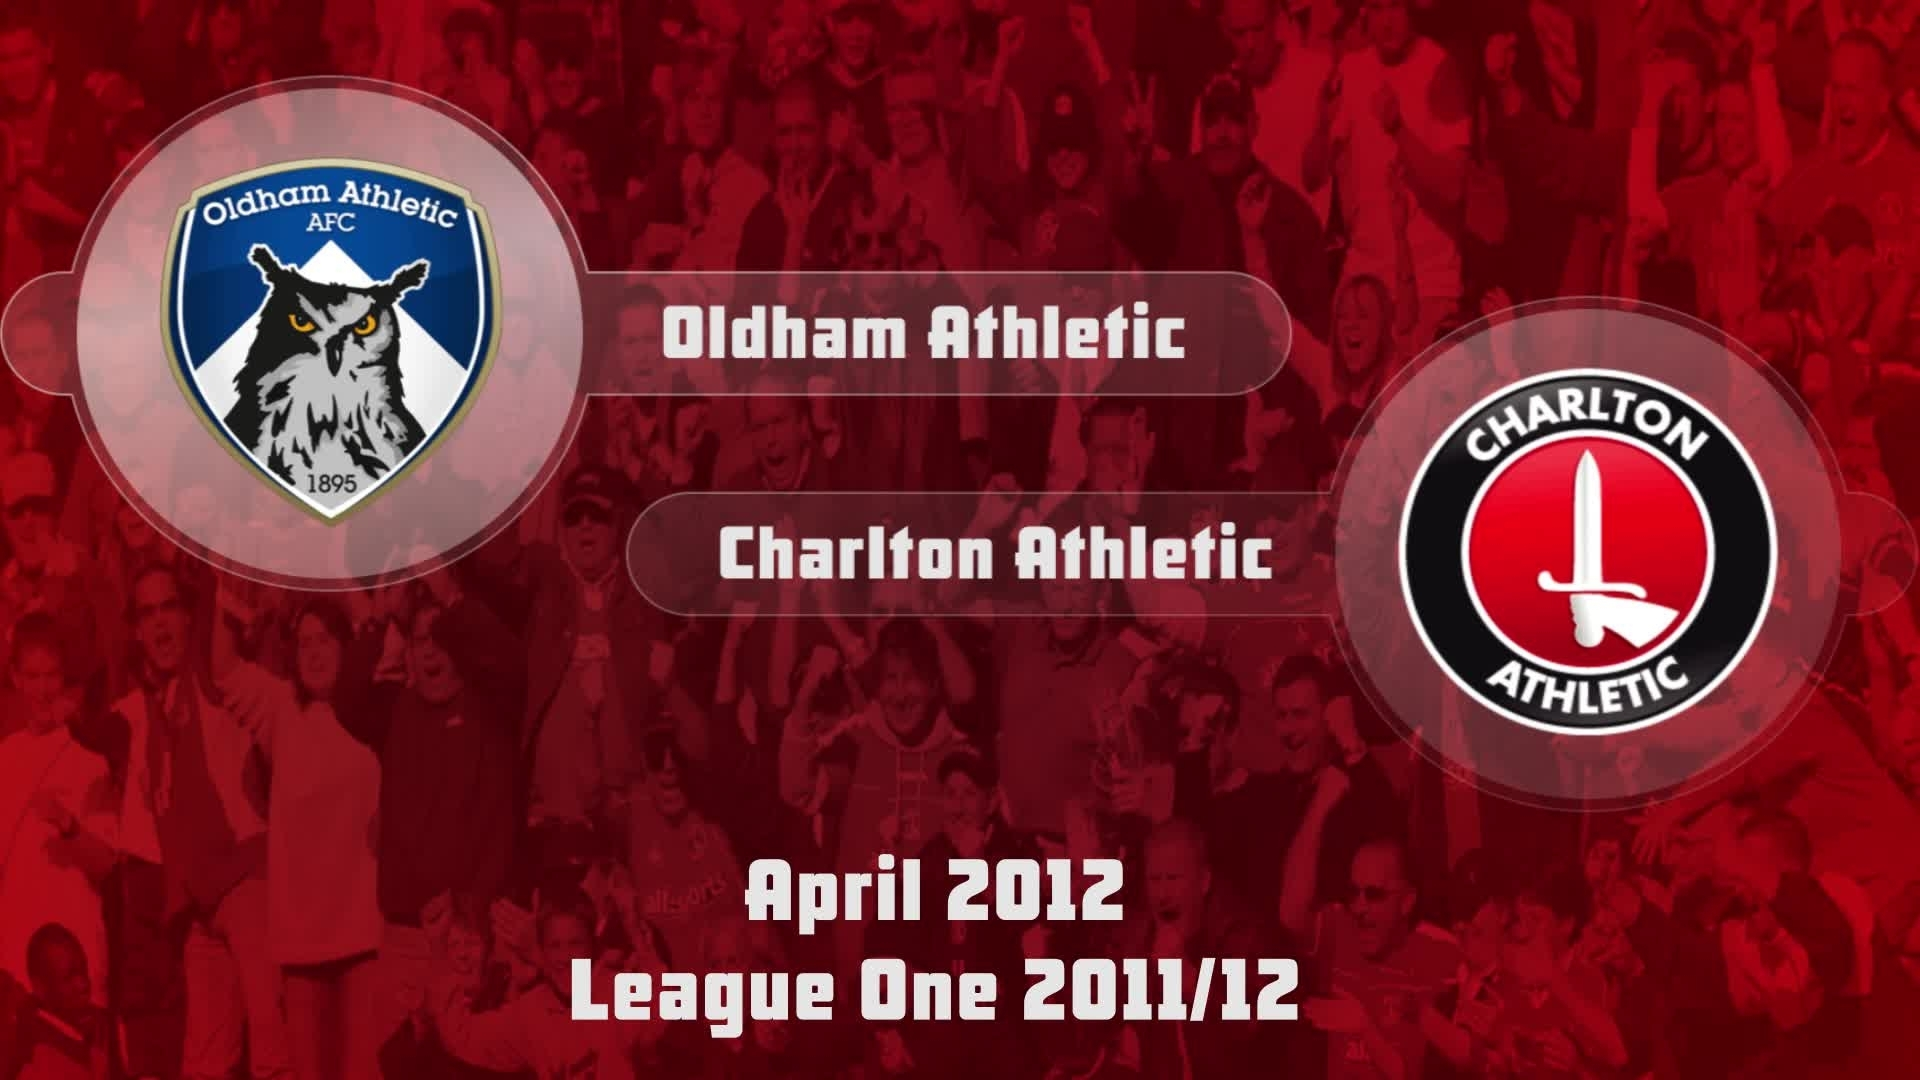 47 HIGHLIGHTS | Oldham 0 Charlton 1 (April 2012)